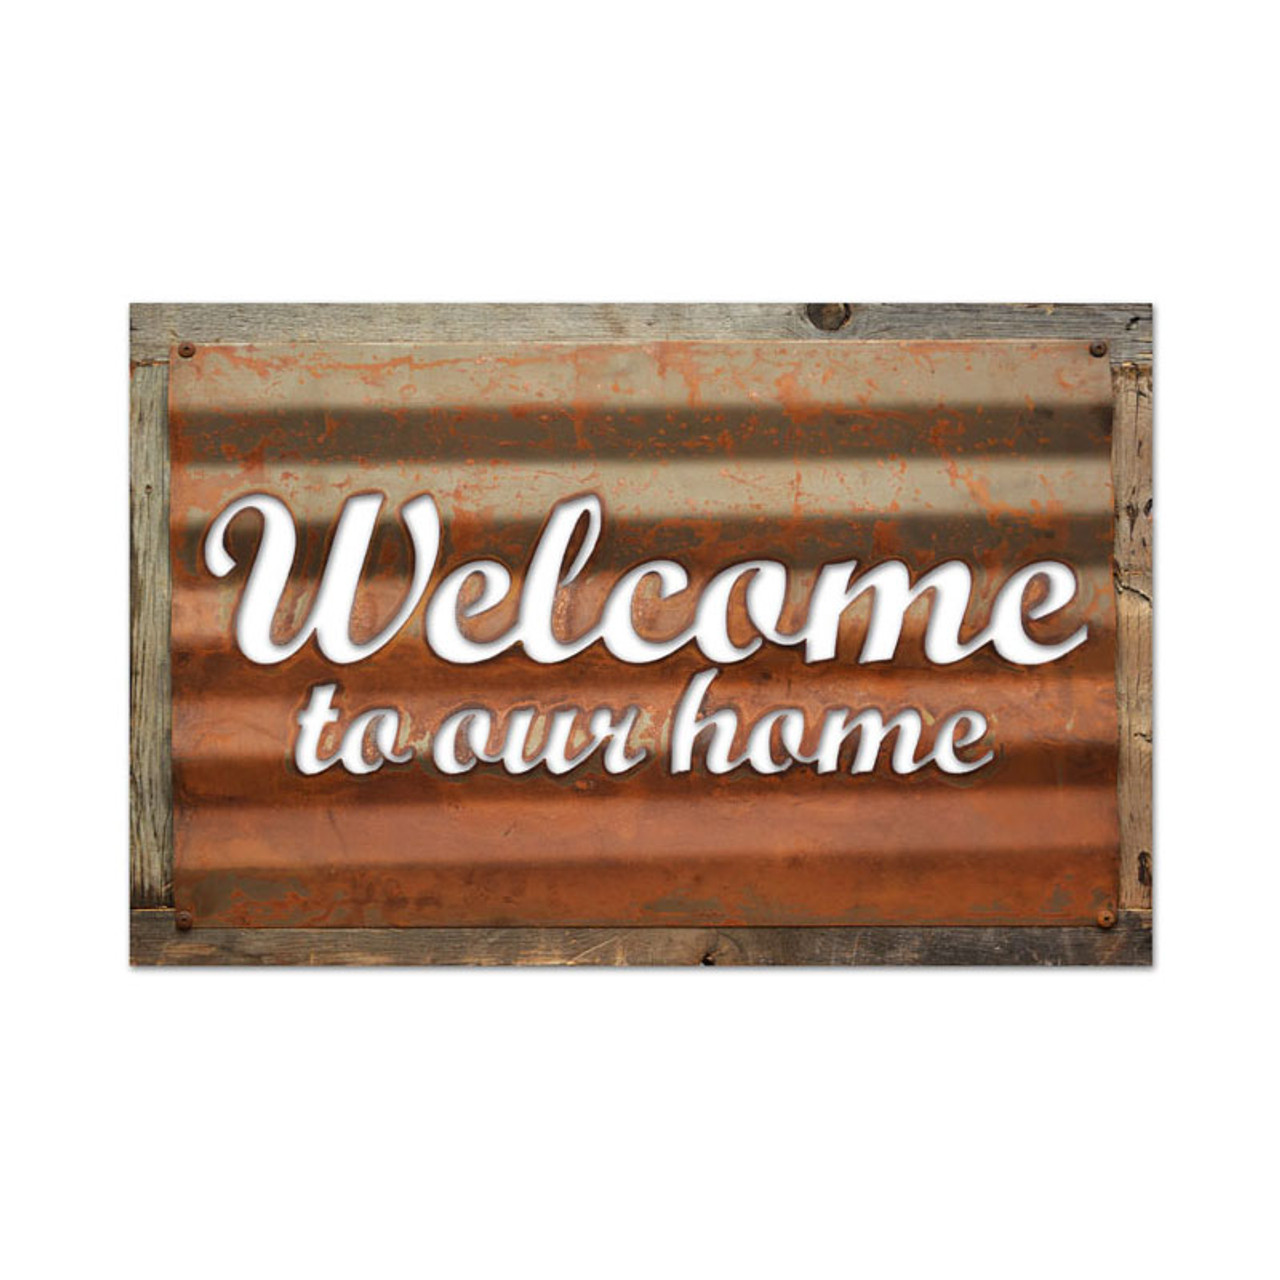 Vintage Welcome Corrugated Rustic Barn Wood Sign 19 x 26 Inches